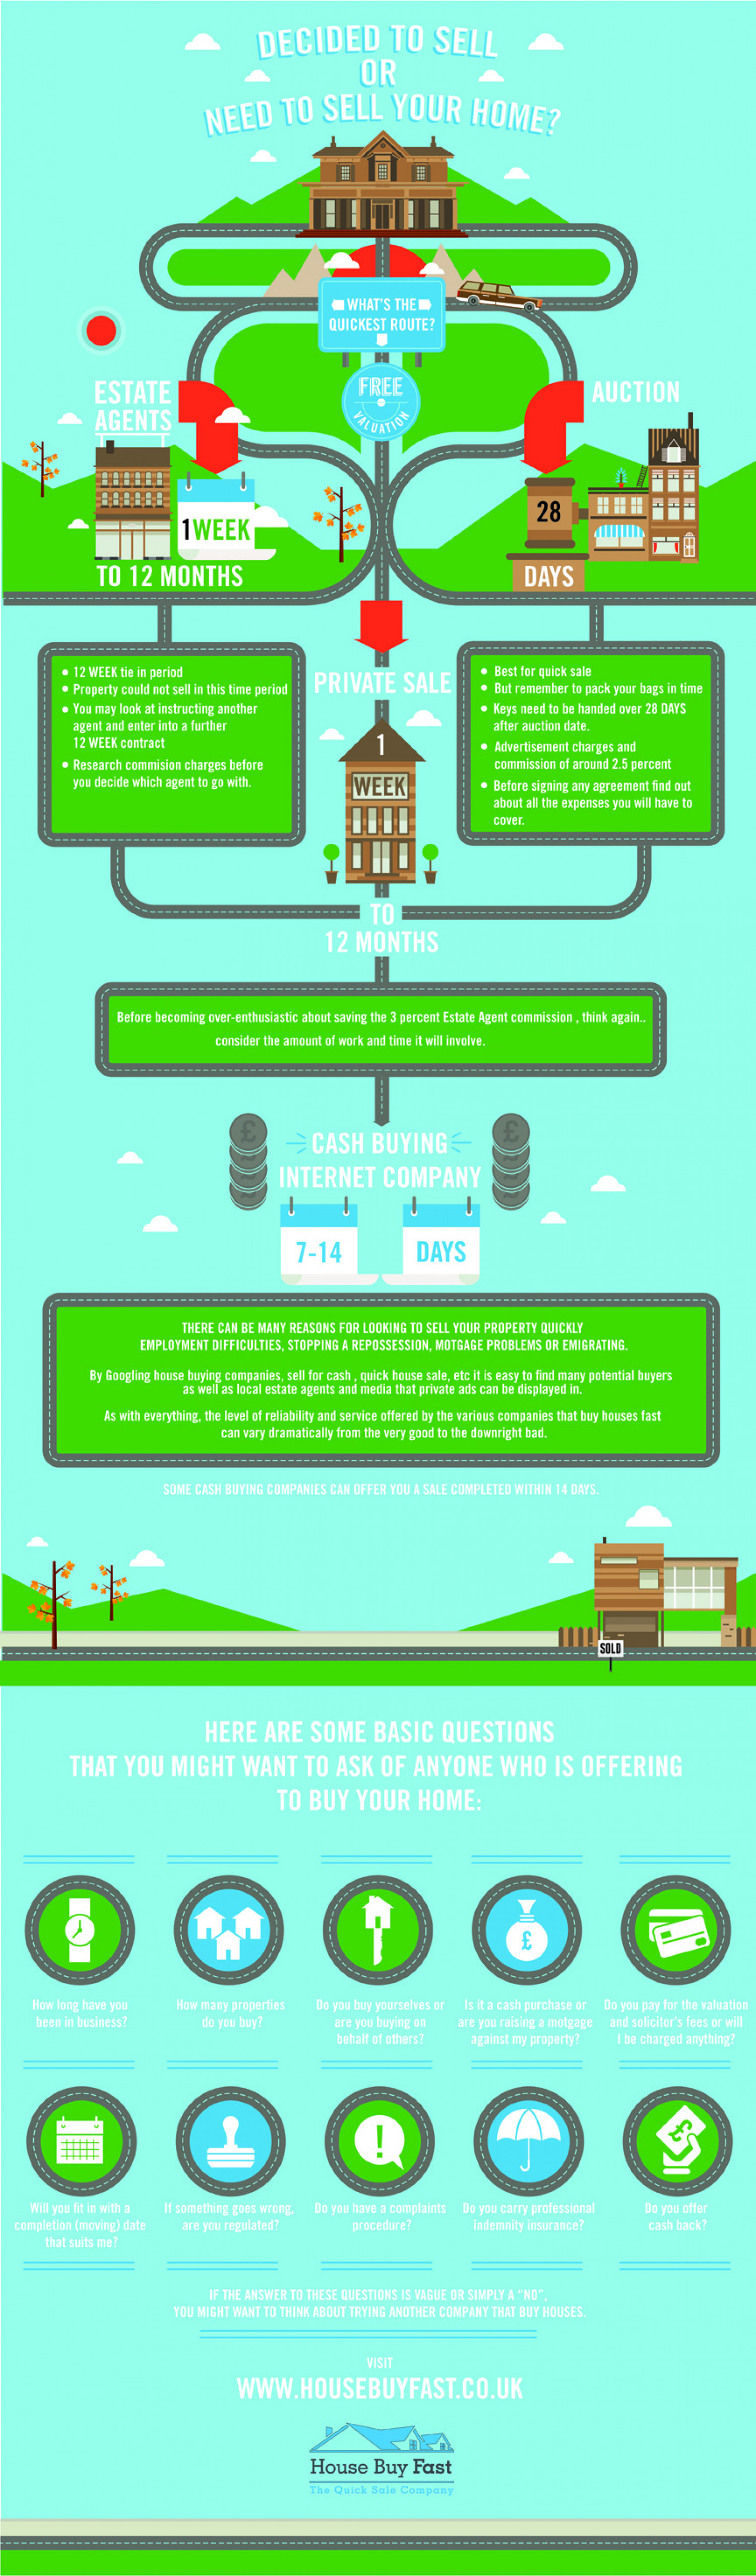 Decided To Sell Or Need To Sell Your House? What's The Quickest Option? Infographic